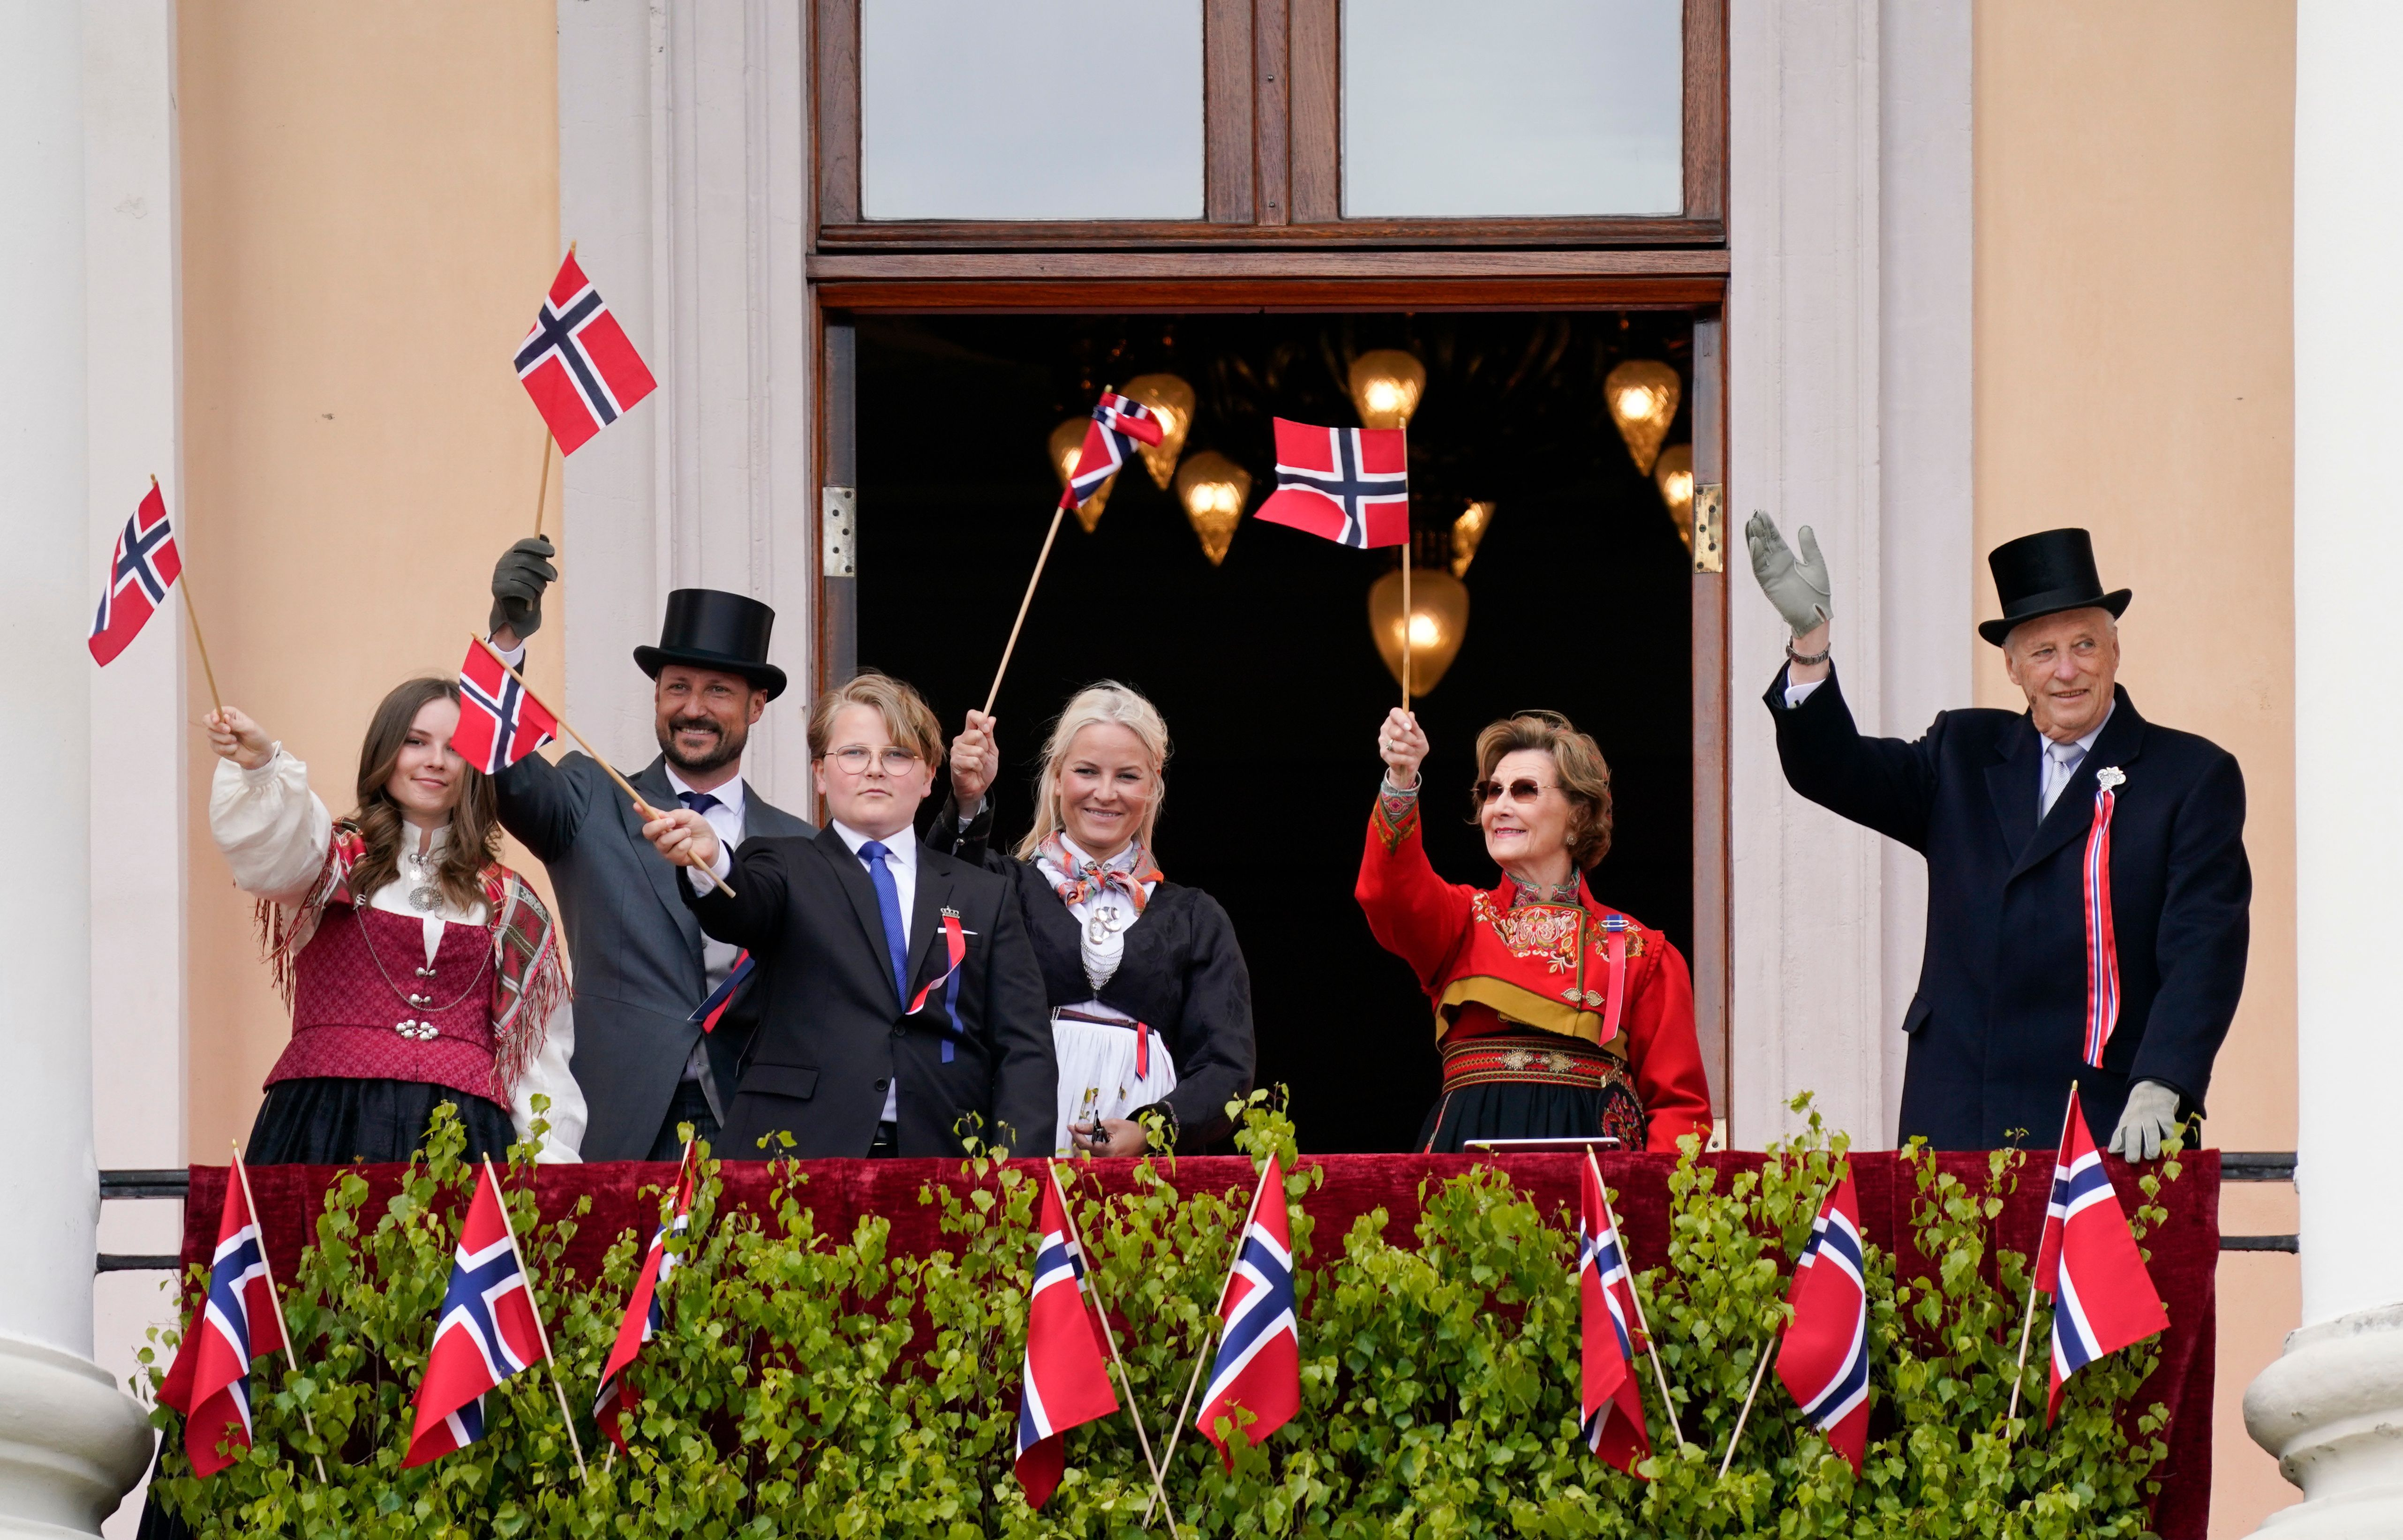 Norway S Royal Family Celebrates National Day During The Coronavirus In Photos 2020